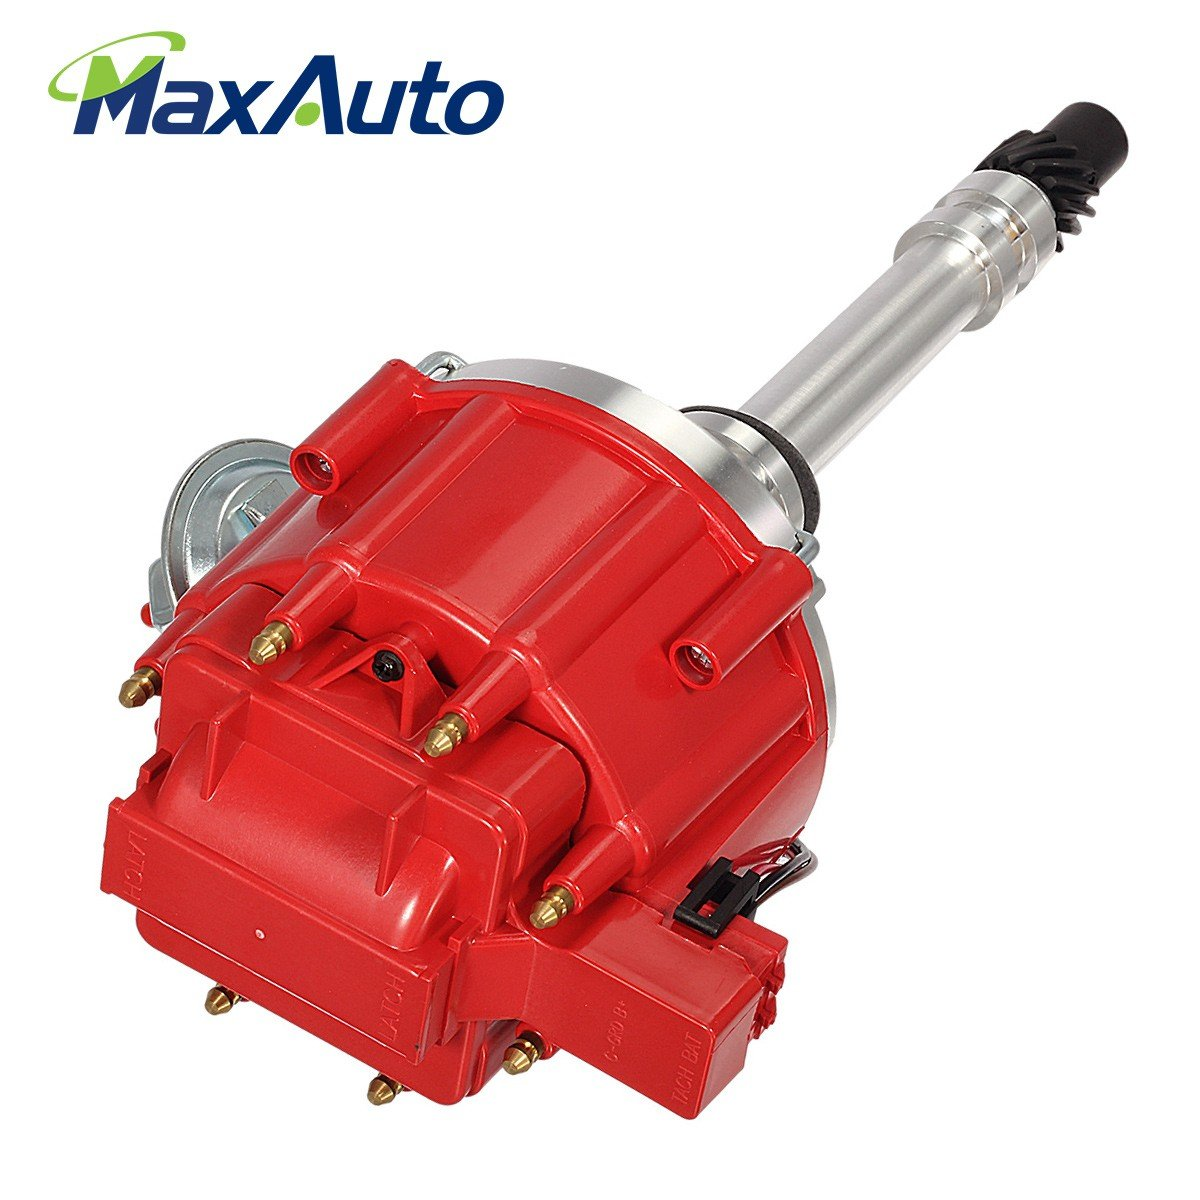 Maxauto Ignition Distributor With Cap Rotor For Chevy 350 Hei Rebuild Kit Sbc Bbc 454 Fits 1103200 301895 850001r Gm08 Automotive